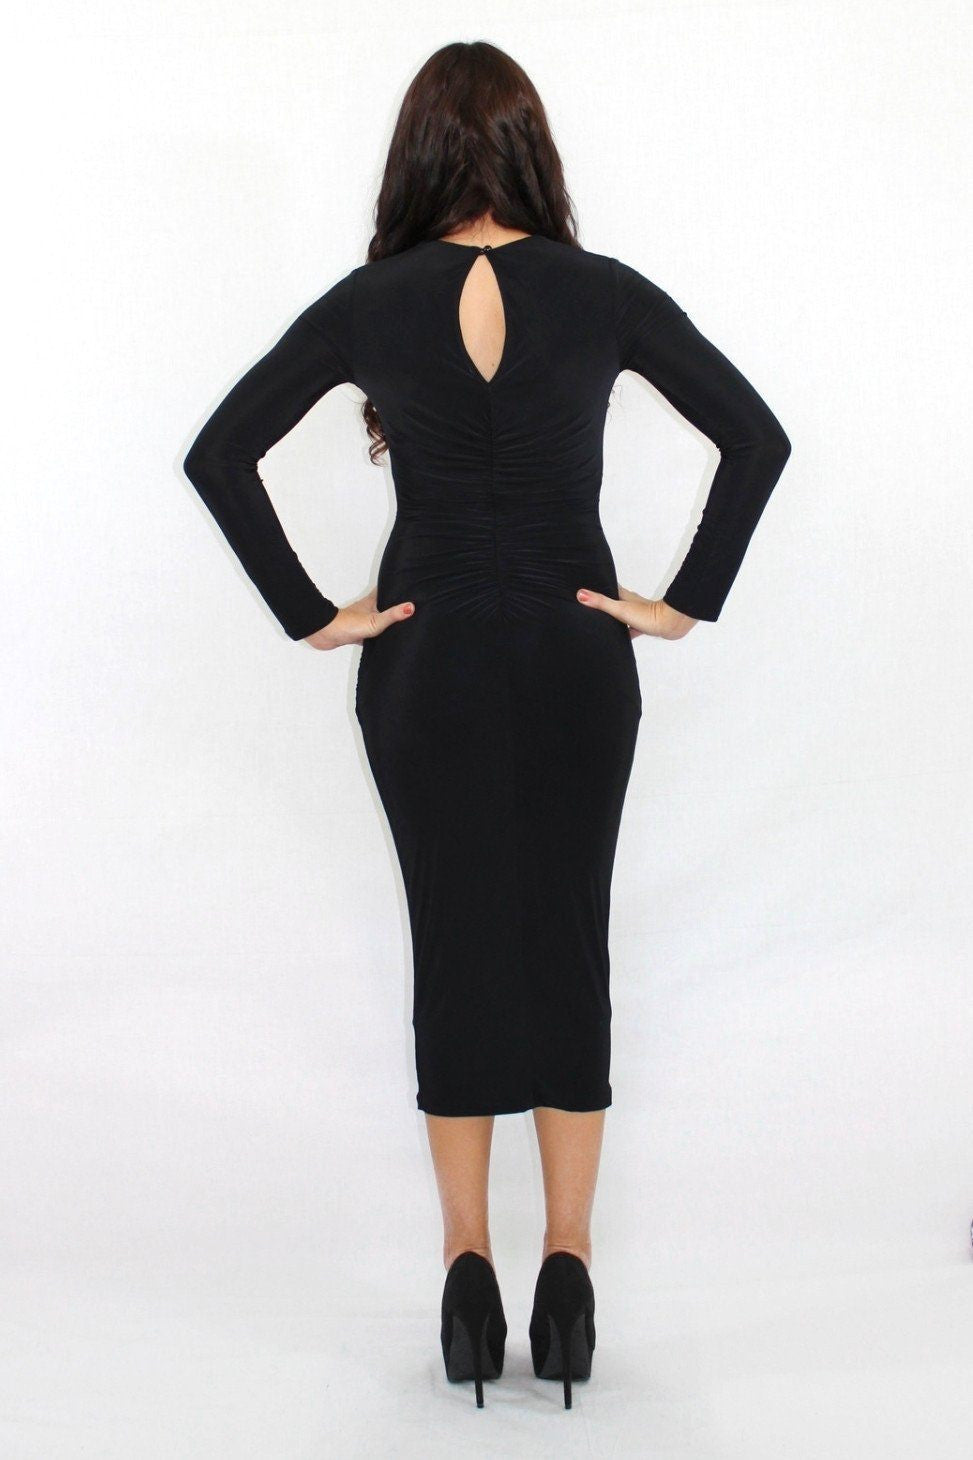 The Biggest Boss Keyhole Black Bodycon Dress - The Laguna Room